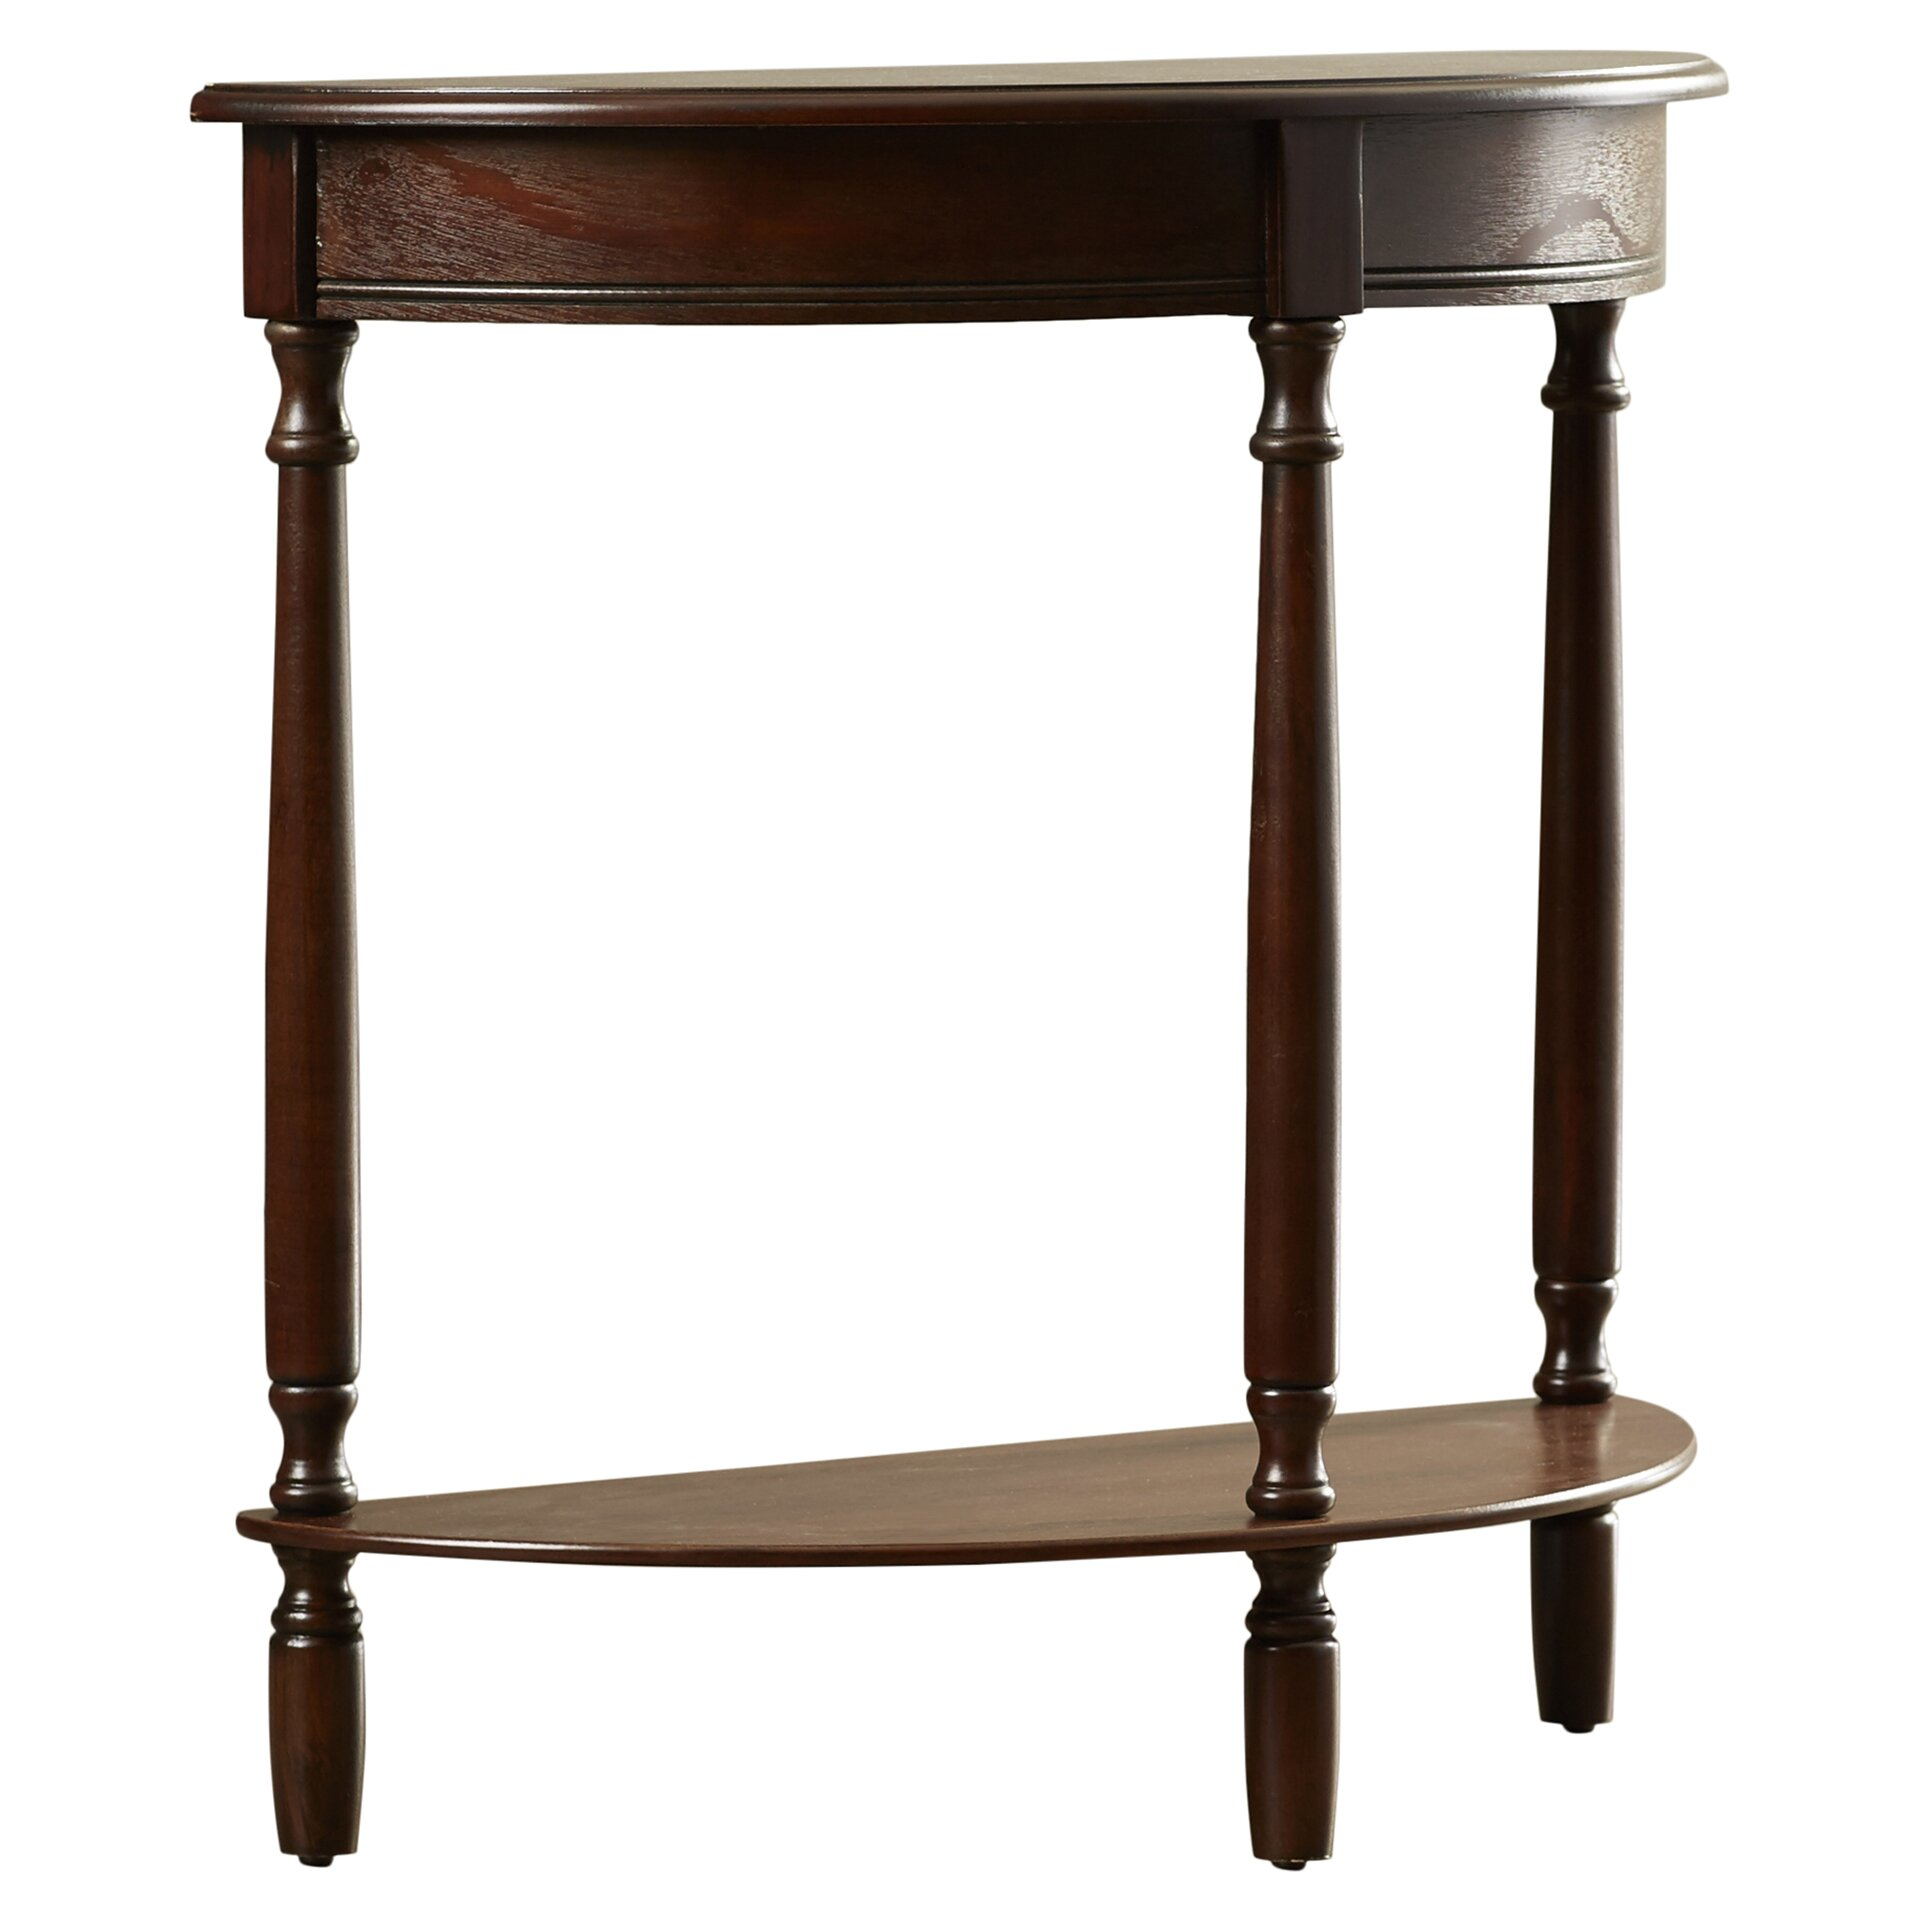 Charlton home spelman crescent half moon console table for Half moon console table